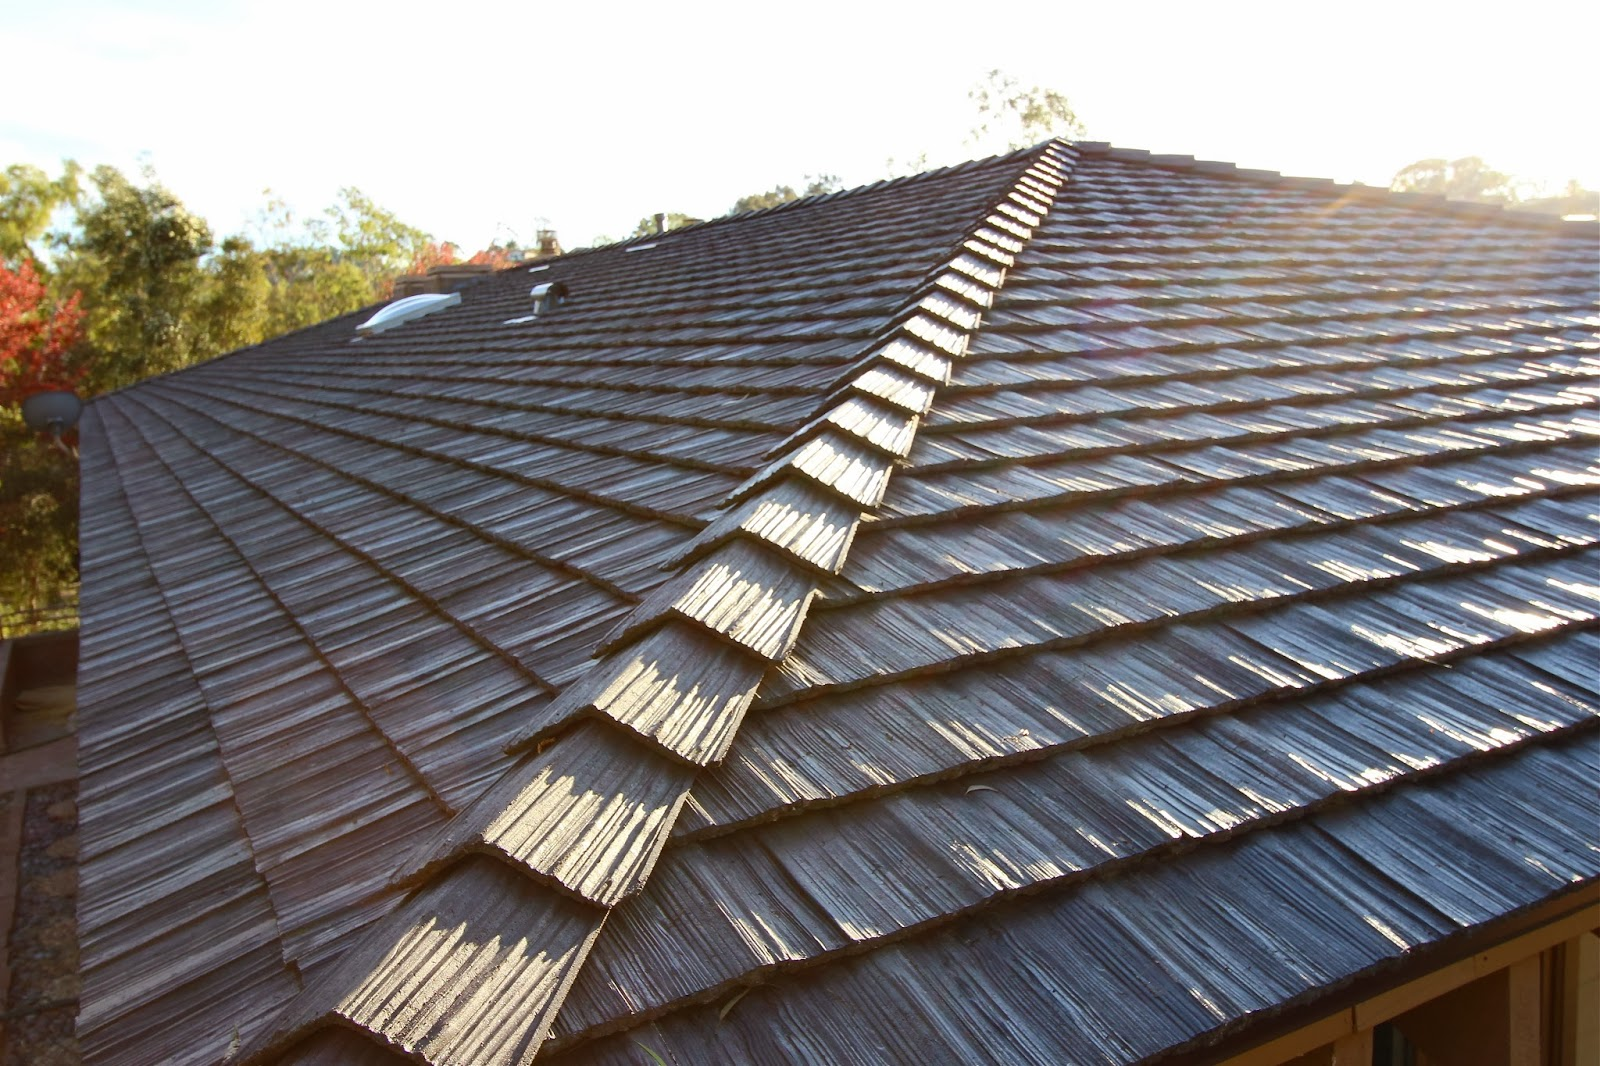 San Diego Roofer And General Contractor: New Boral Madera Tile Roof In  Rancho Santa Fe